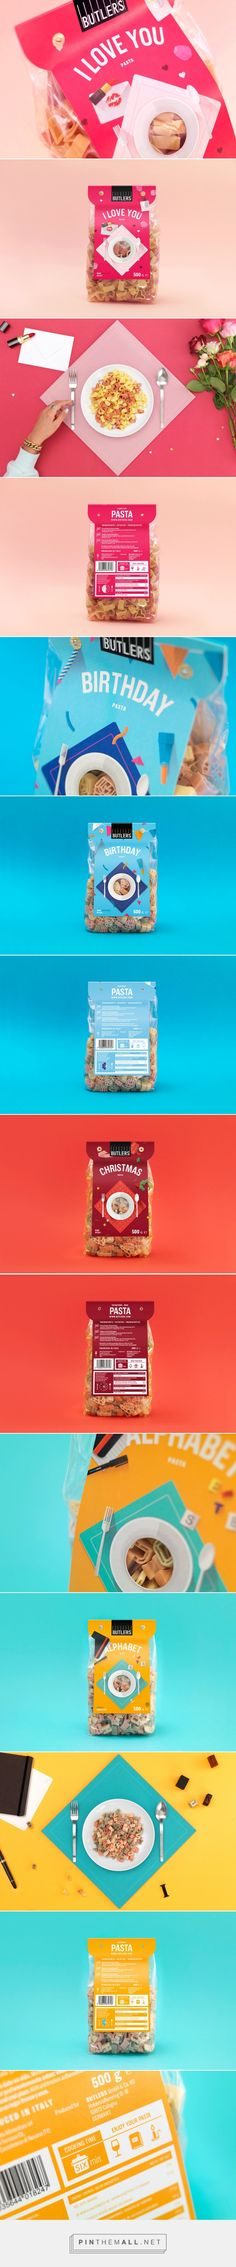 Butlers Pasta packaging design by STUDIO CHAPEAUX - http://www.packagingoftheworld.com/2016/11/butlers-pasta.html